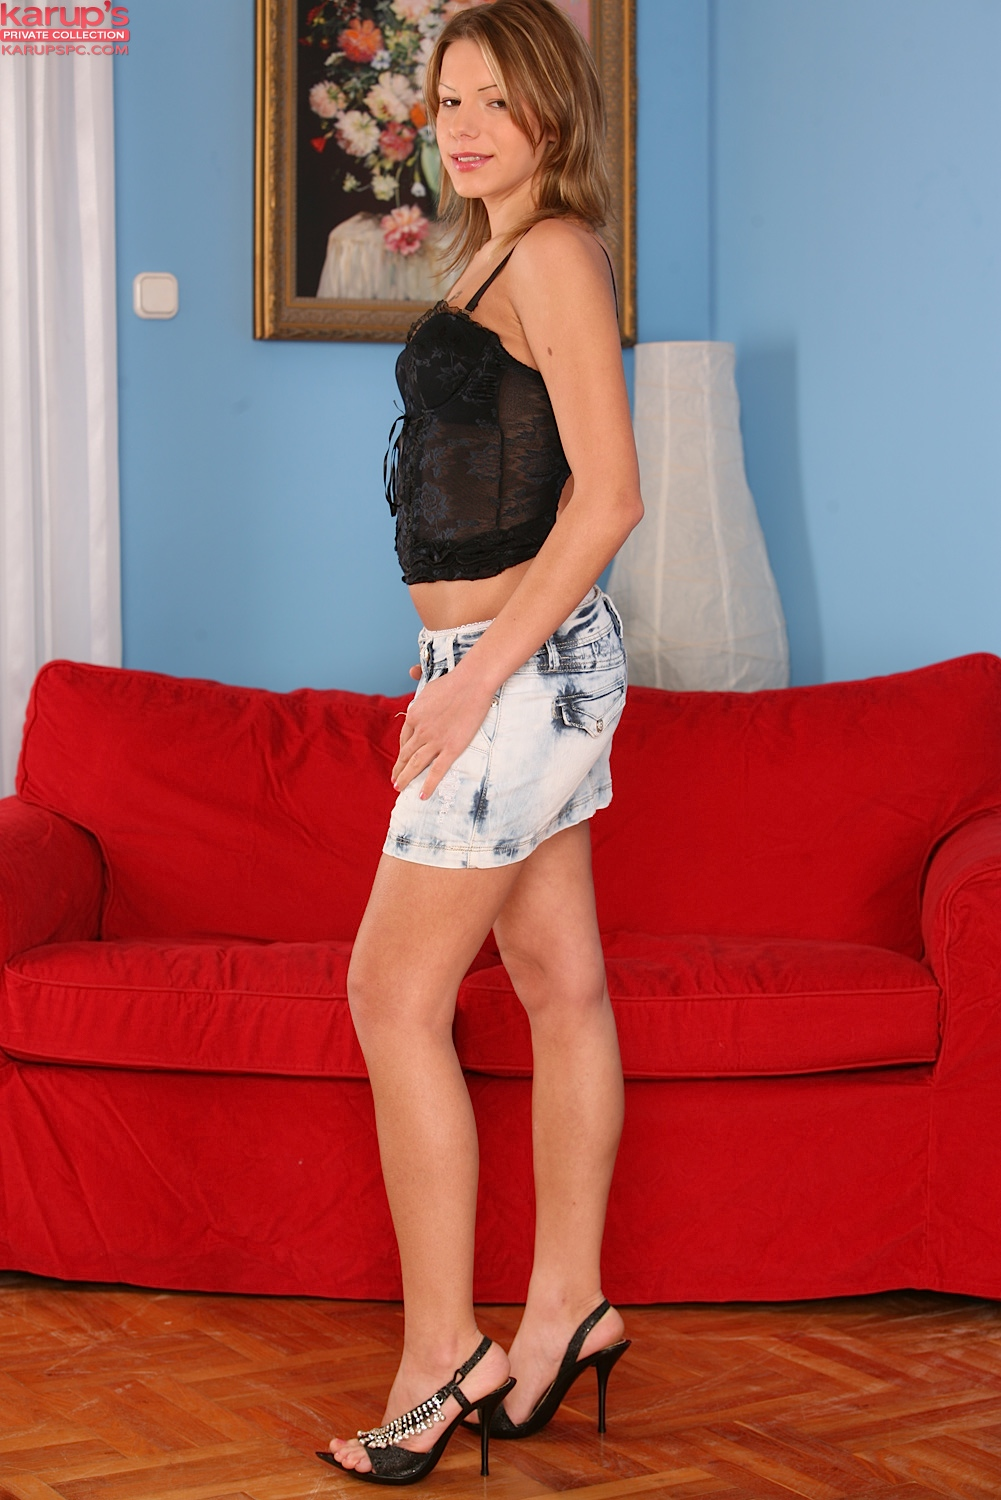 Teen amateur Lexi Summers slips off miniskirt and lace panties on leather sofa № 908959  скачать